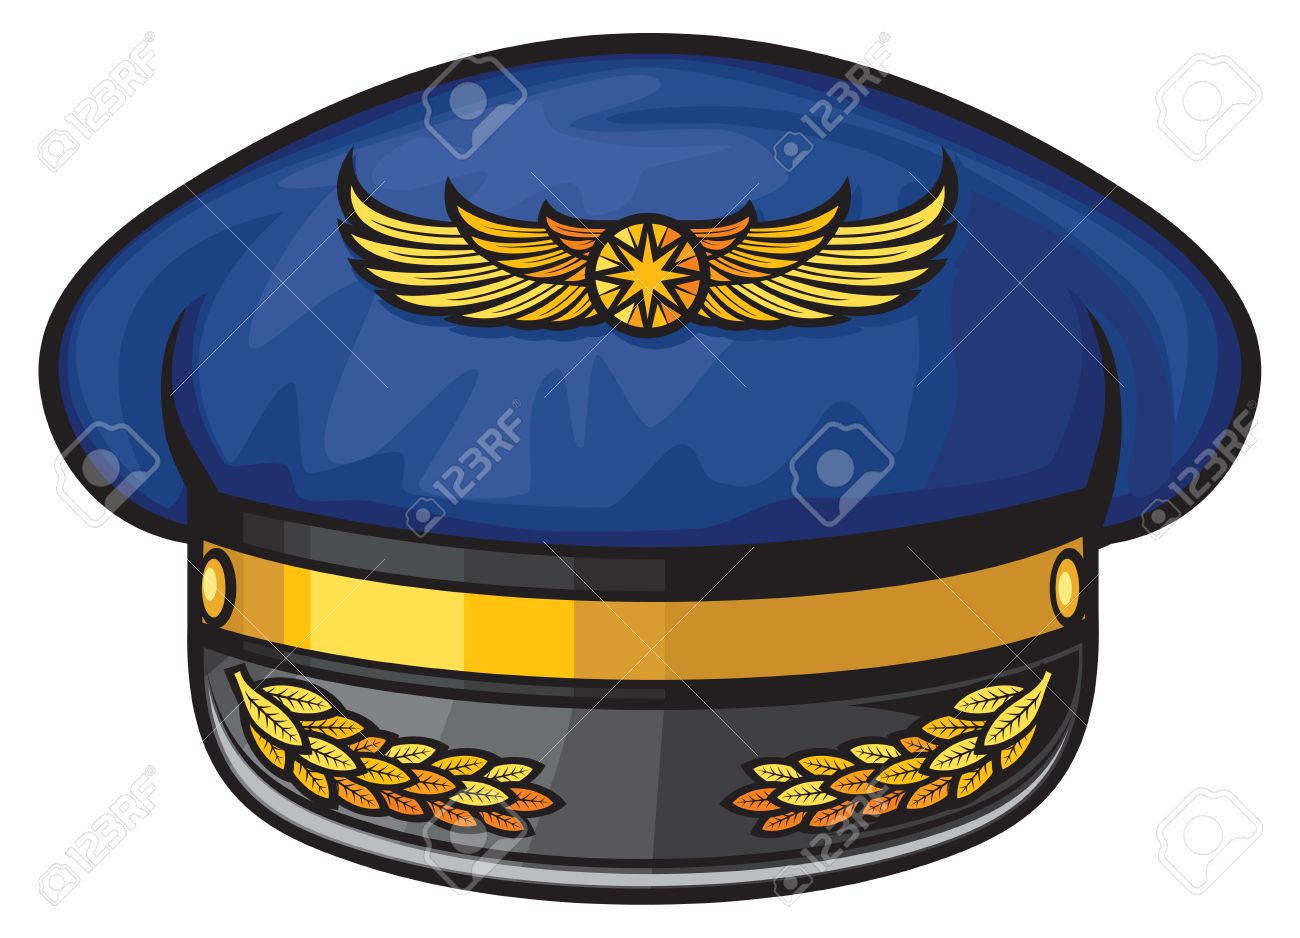 Airline Pilots Hat Aviator Cap With Gold Insignia Stock Vector